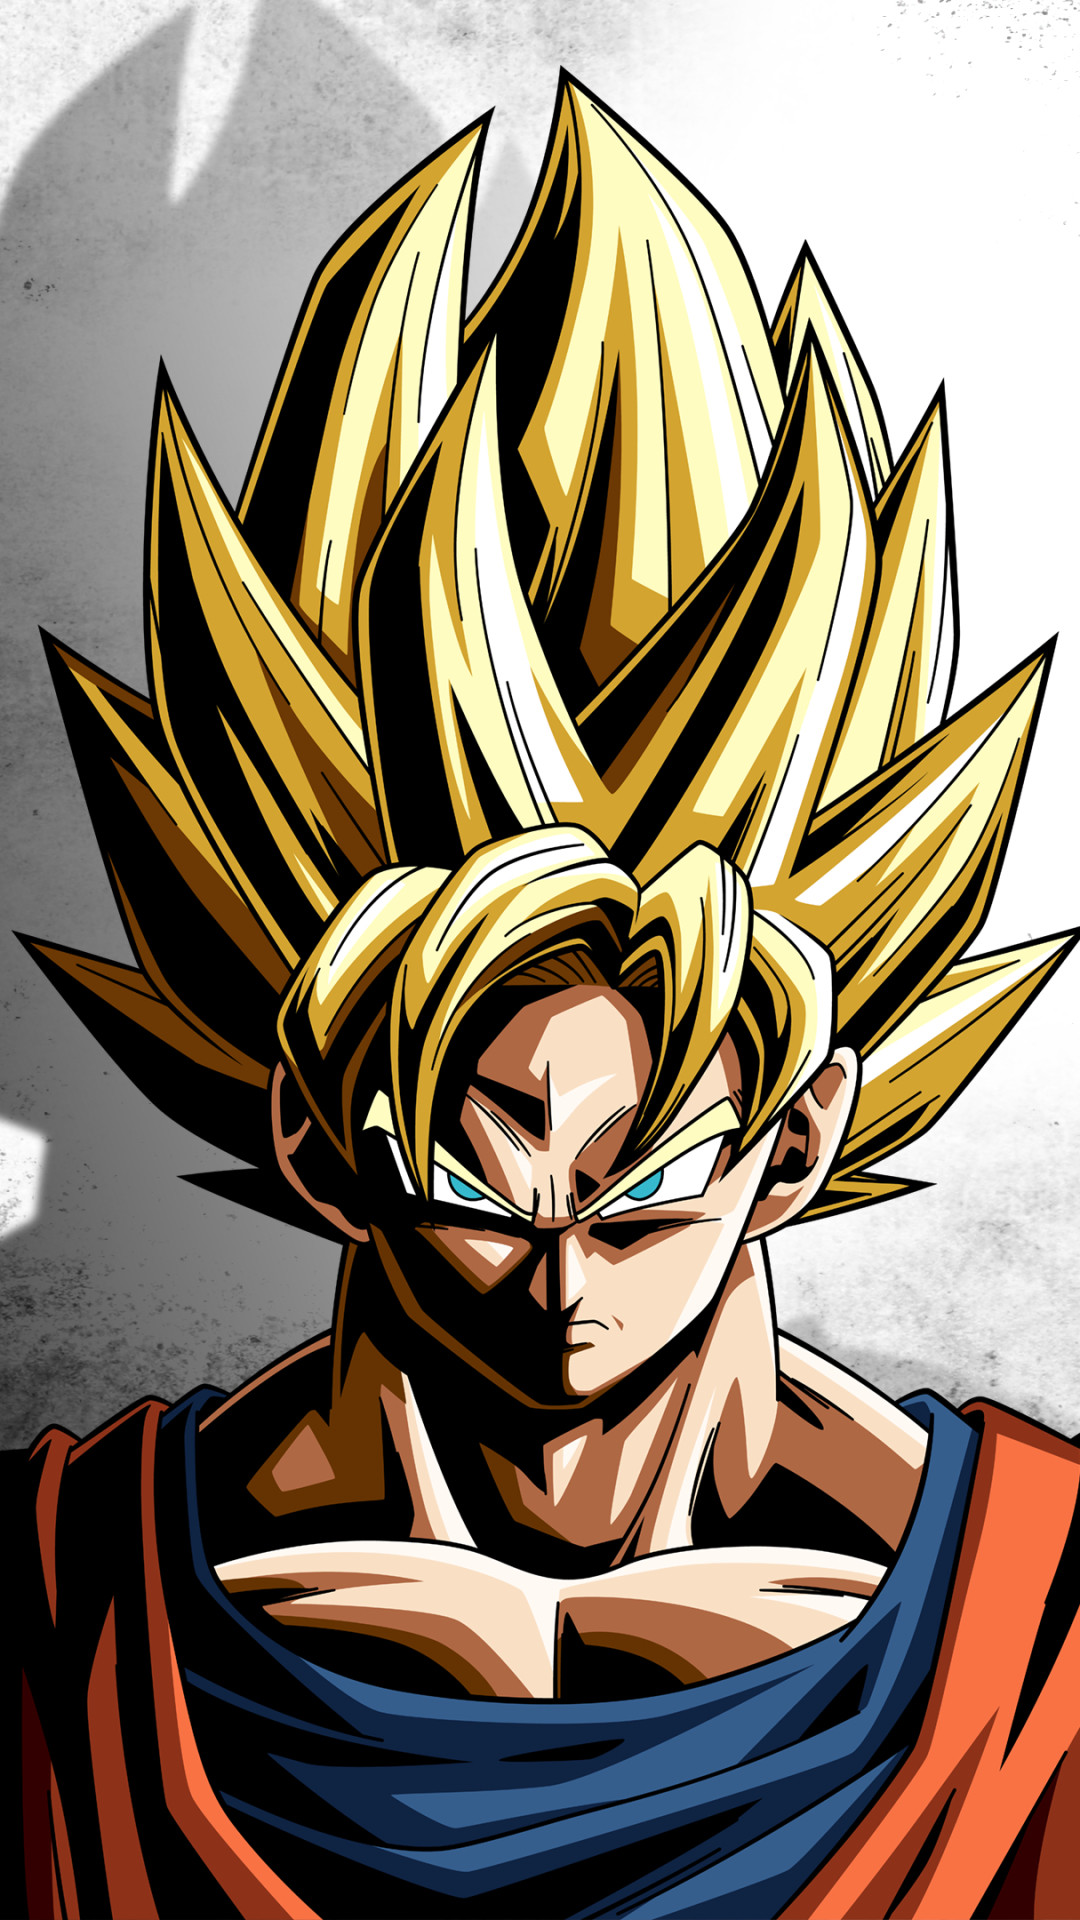 Dragon ball iphone wallpaper 64 images - Dragon ball z 4 ...